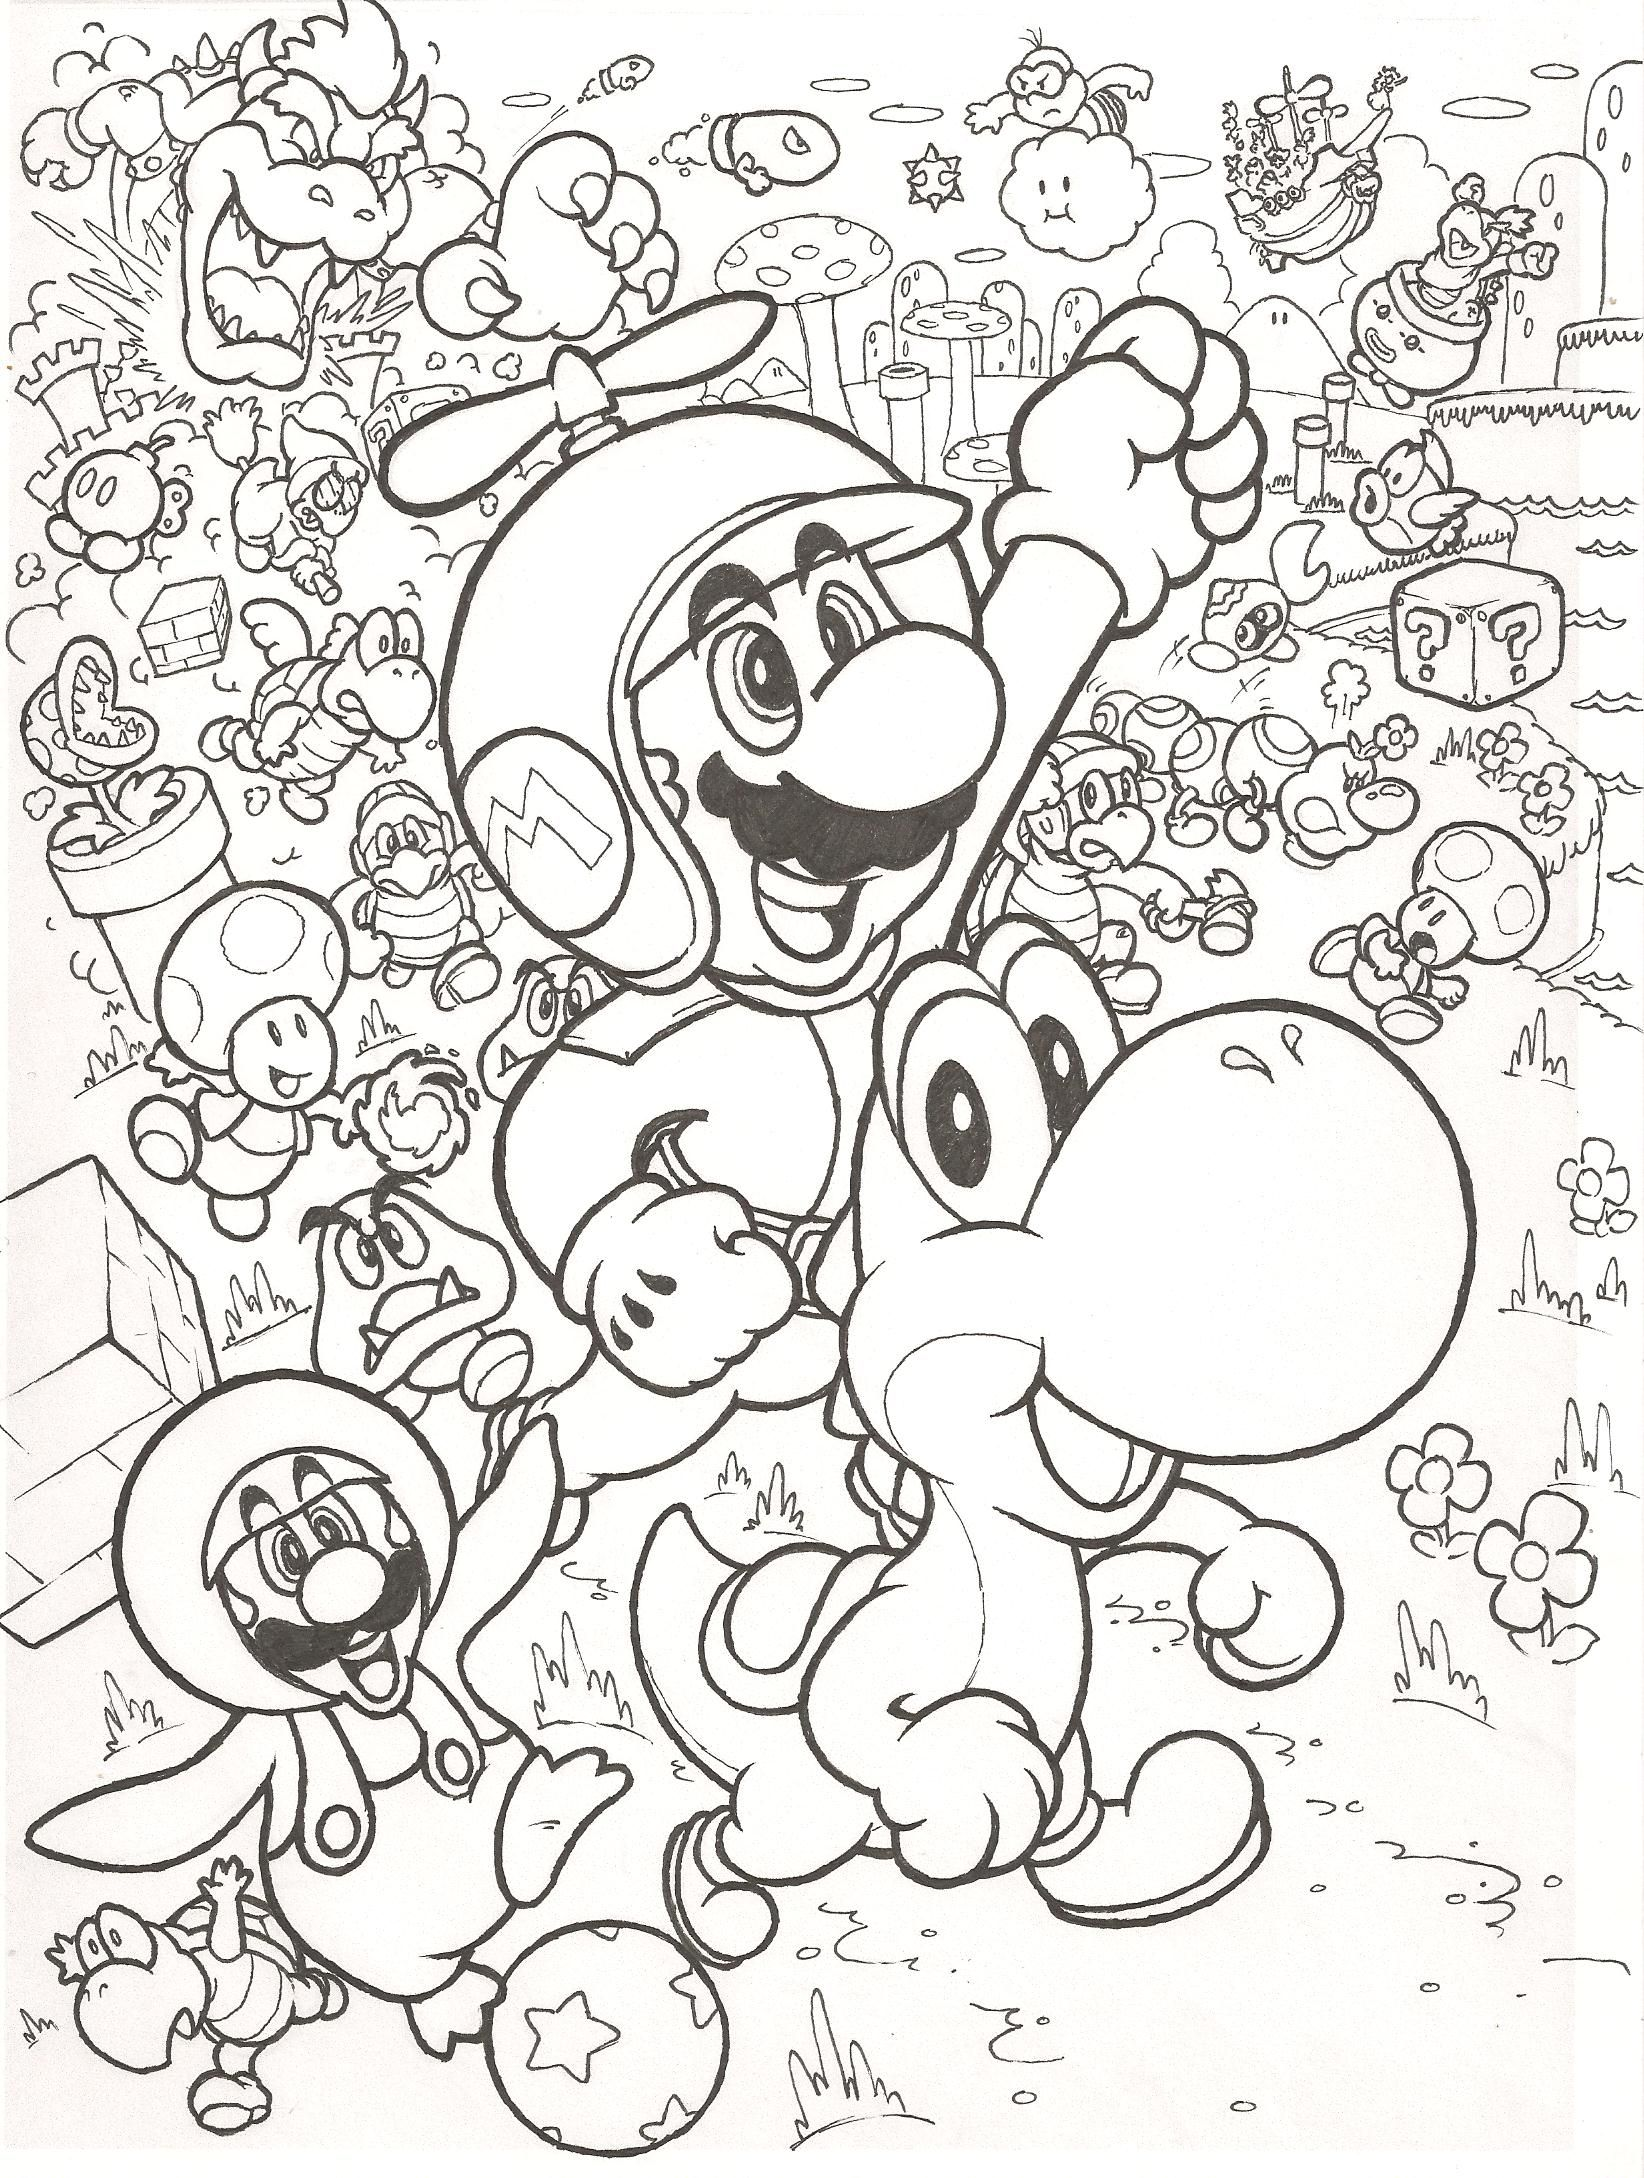 3ds Super Smash Bros Coloring Pages Coloring Pages For